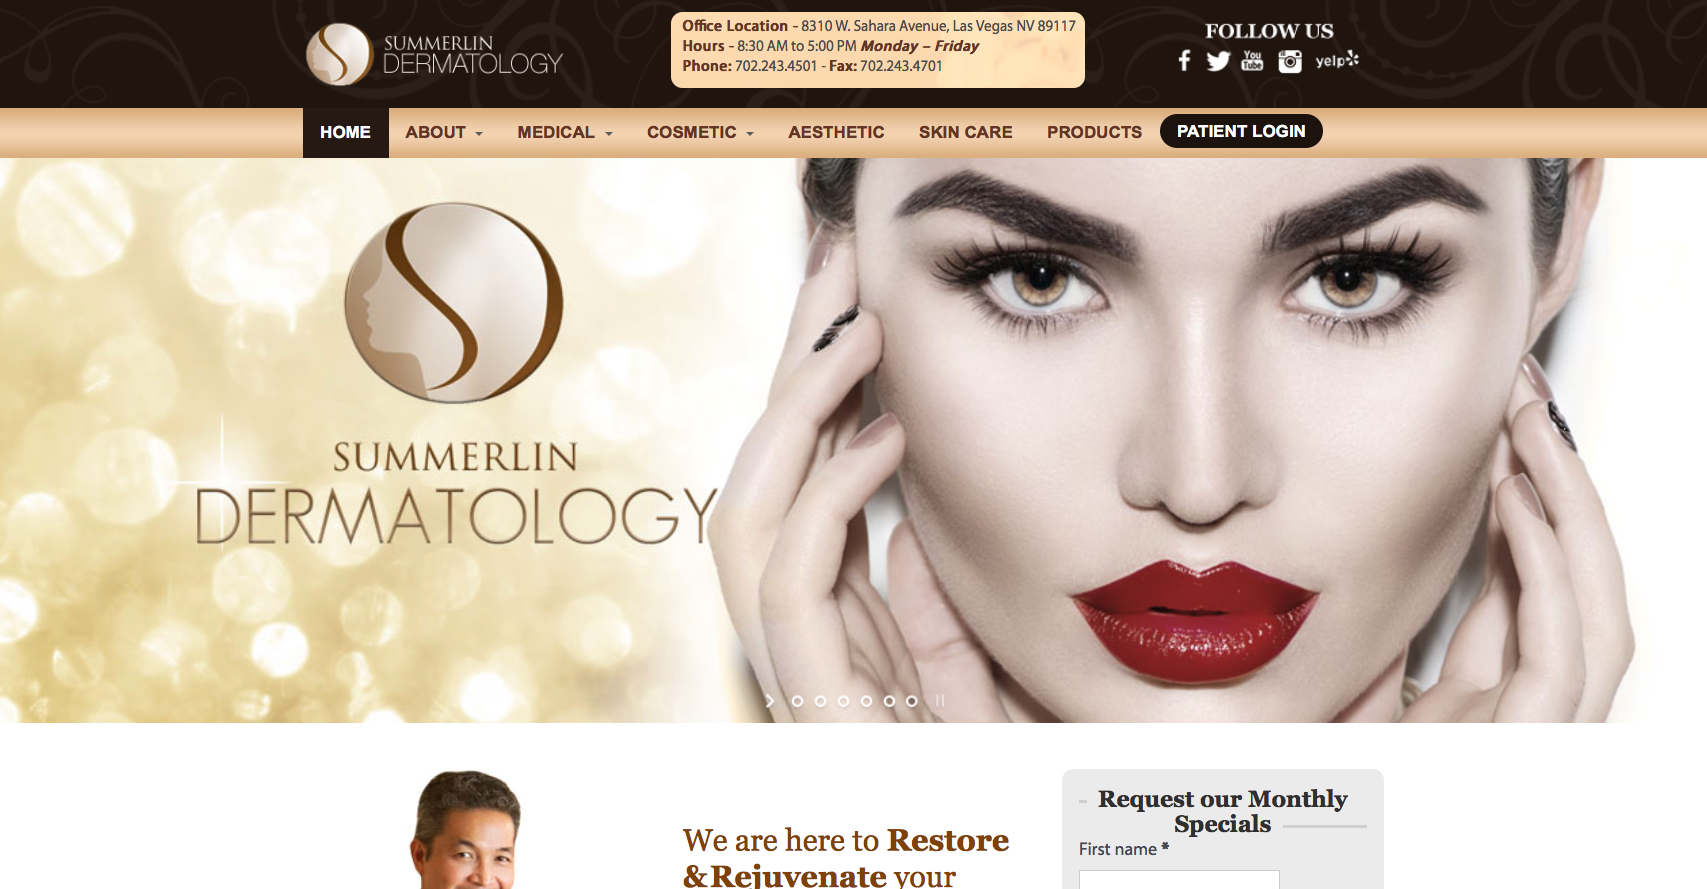 Summerlin Dermatology, Dr. Reuel Aspacio